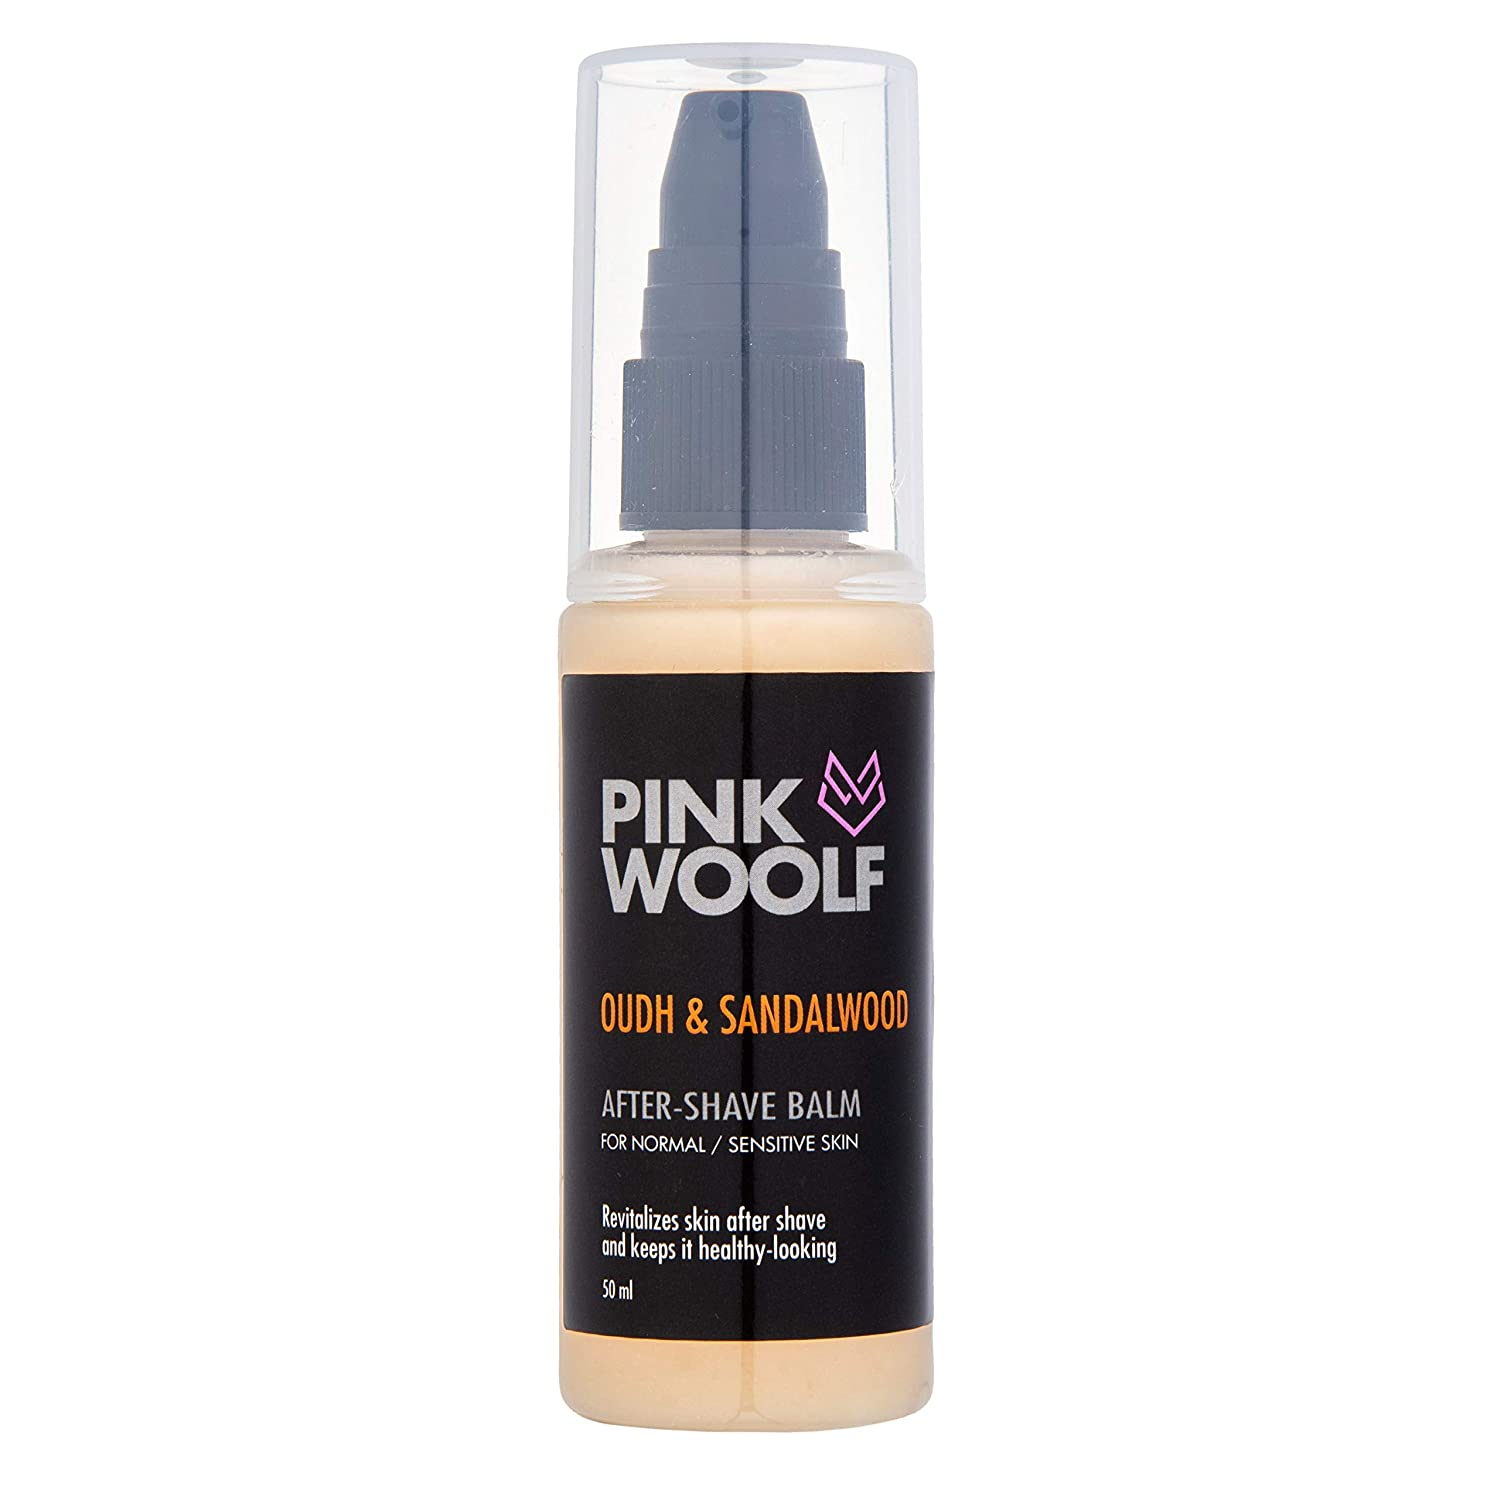 Pink Woolf Luxury After Shave Balm - 50 ml for Normal to Sensitive Skin - Oudh & Sandalwood